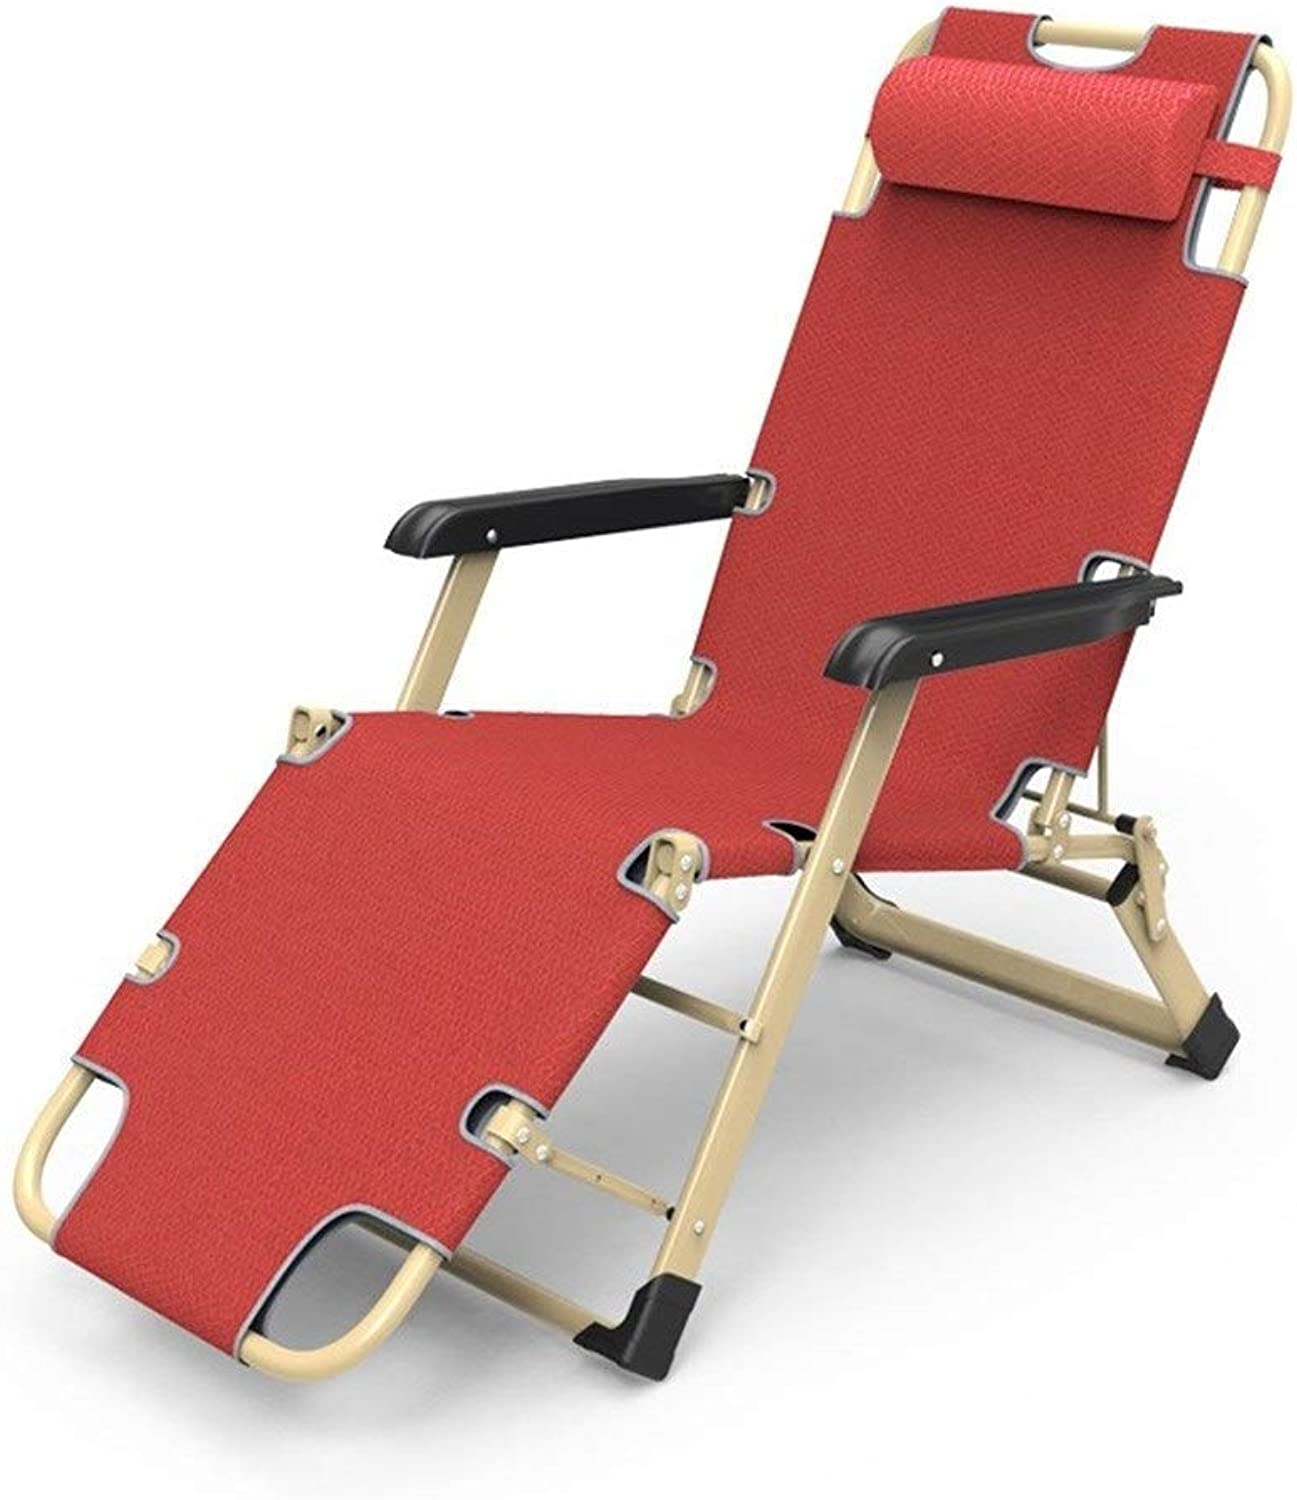 Patio Chairs Reclining for Heavy People Outdoor Beach Lawn Camping Portable Chair Folding Garden Deck Chair with Neck Pillow Support 200kg Red